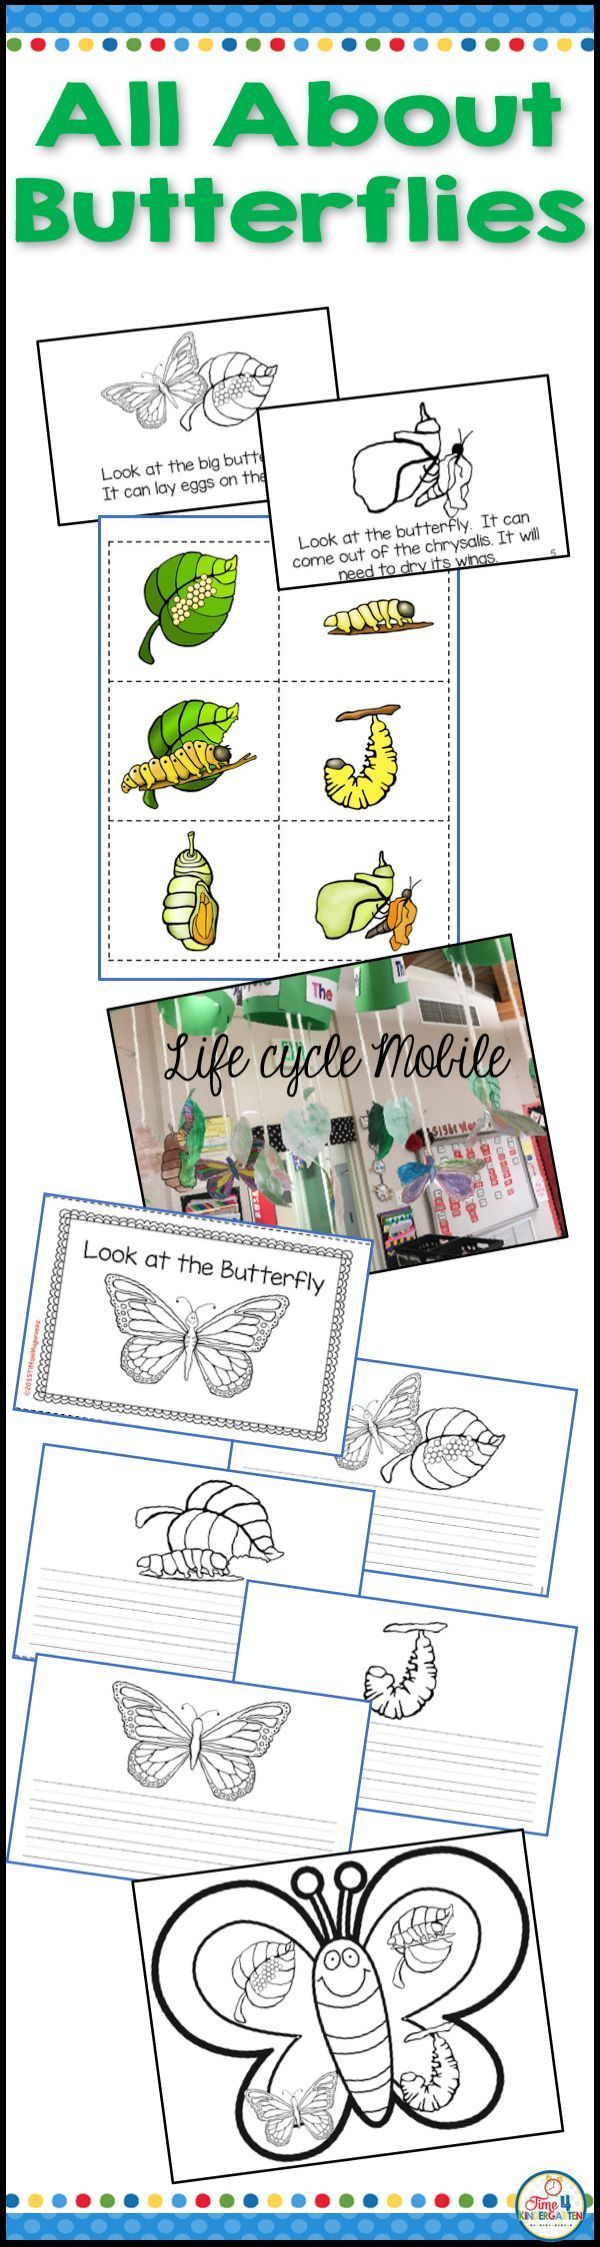 Predownload: All About Butterflies Teach The Butterfly Life Cycle With This Amazing Resource Includes An Sequencing Activities Kindergarten Resources Butterfly Life Cycle [ 2247 x 600 Pixel ]